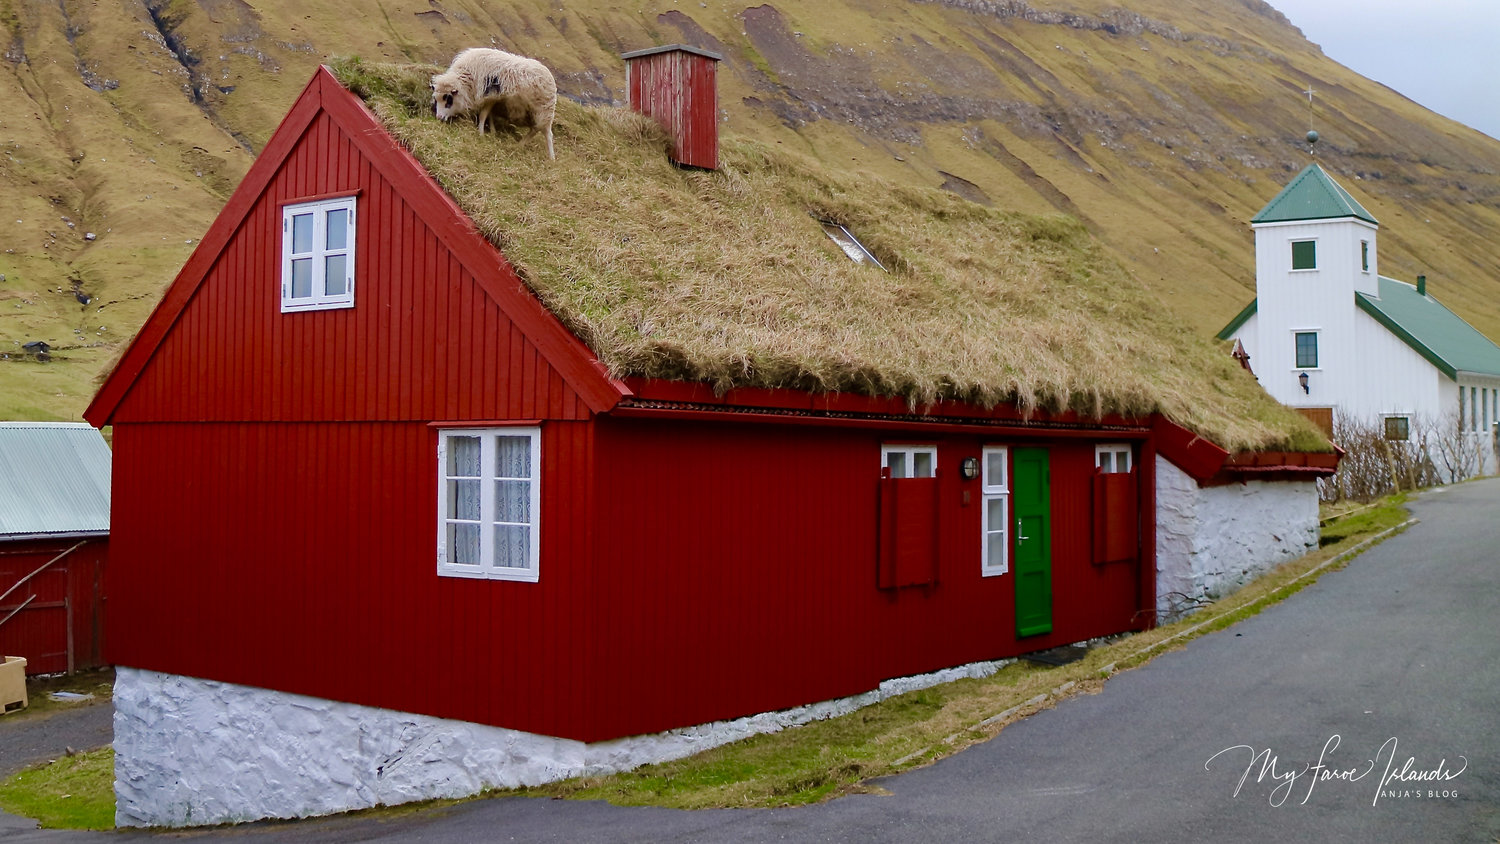 Sheep+on+a+shaggy+grass+roof+© My+Faroe+Islands+-+Anja+Mazuhn++(1+von+1).jpg